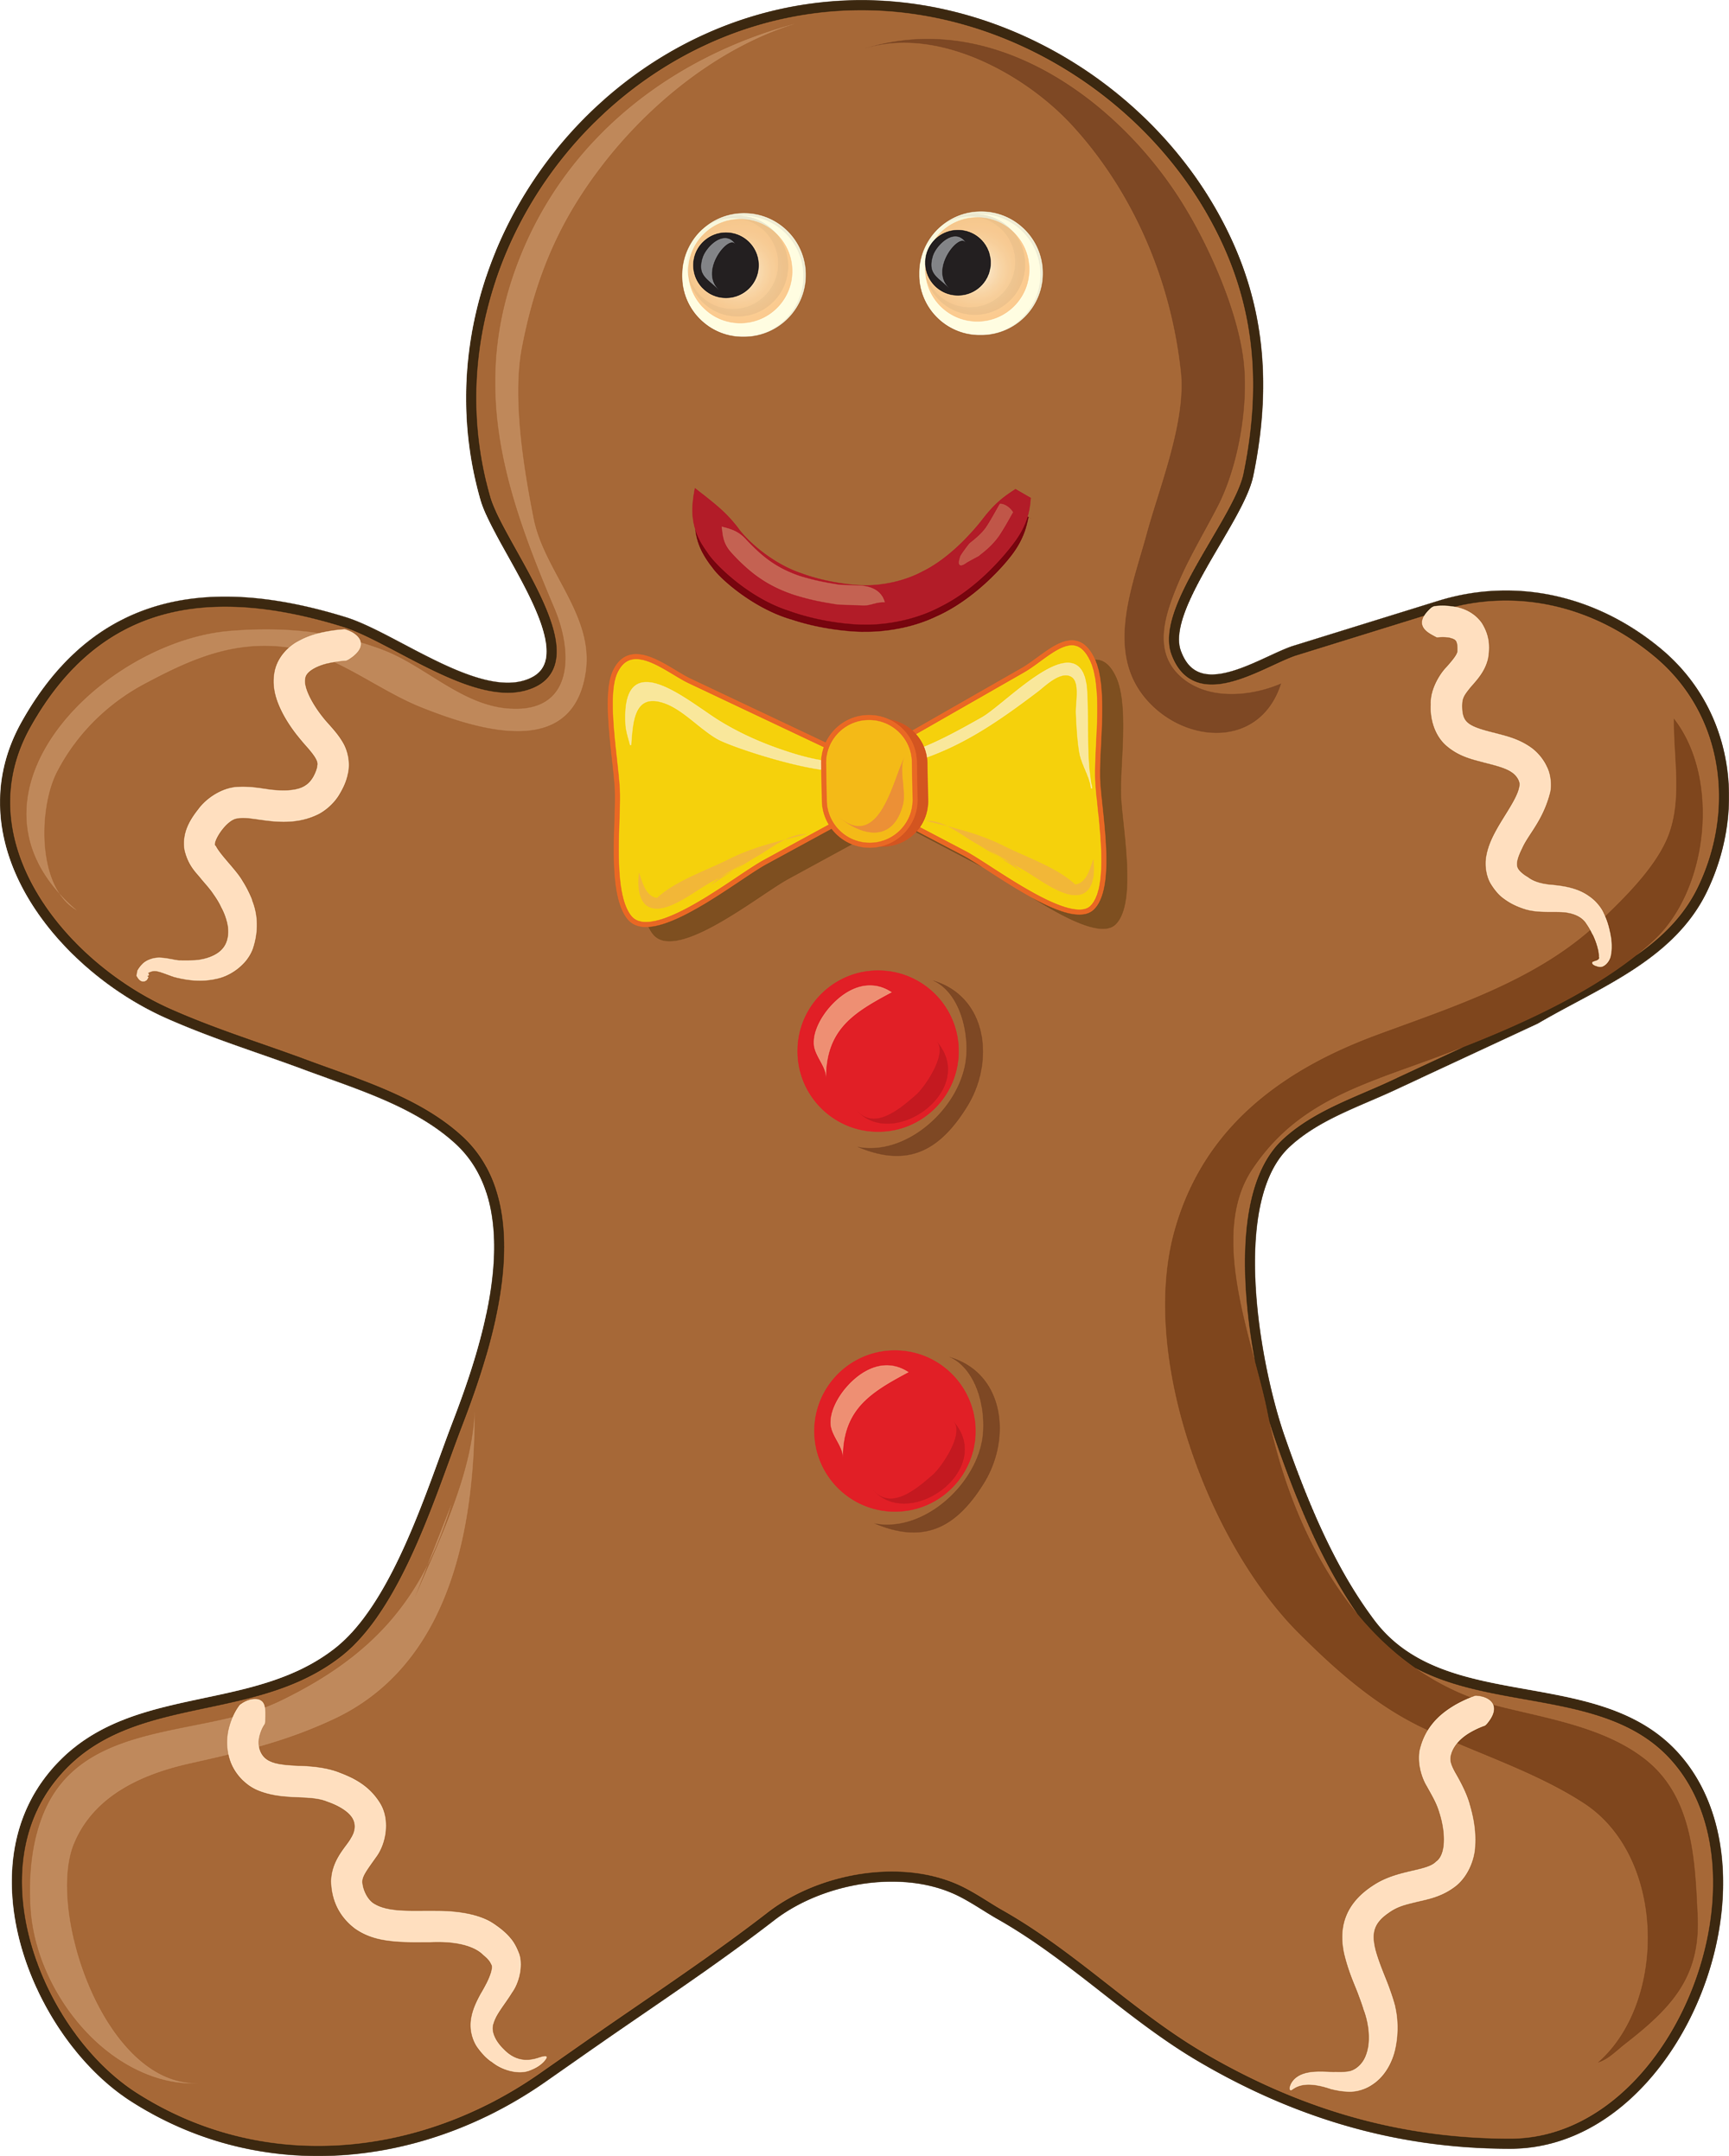 Kd drawing gingerbread man. Free ginger bread pictures